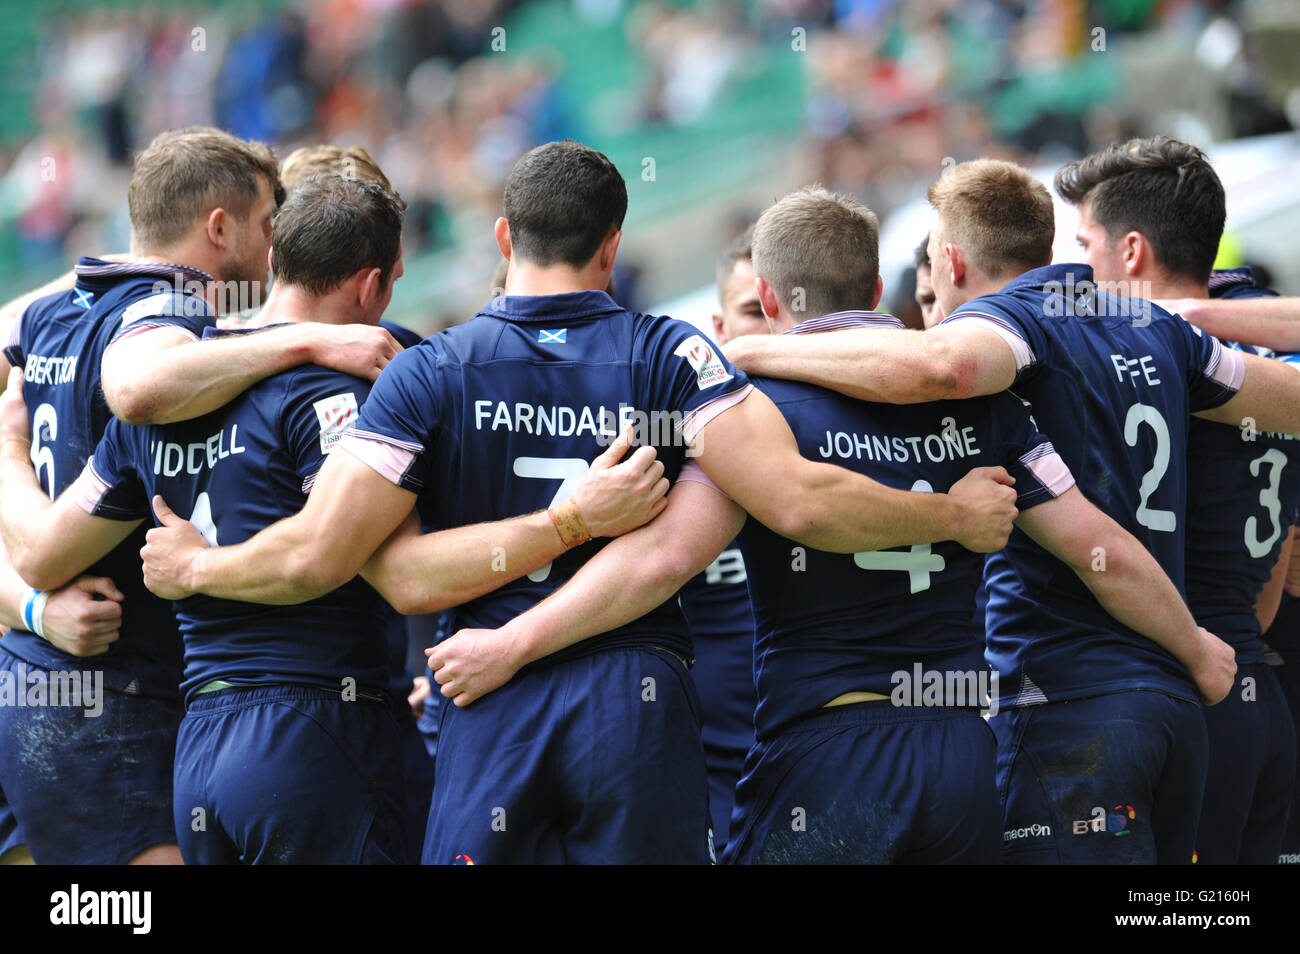 London, UK. 21st May, 2016. Scottish team members in a huddle just after their pool match against France in the - Stock Image